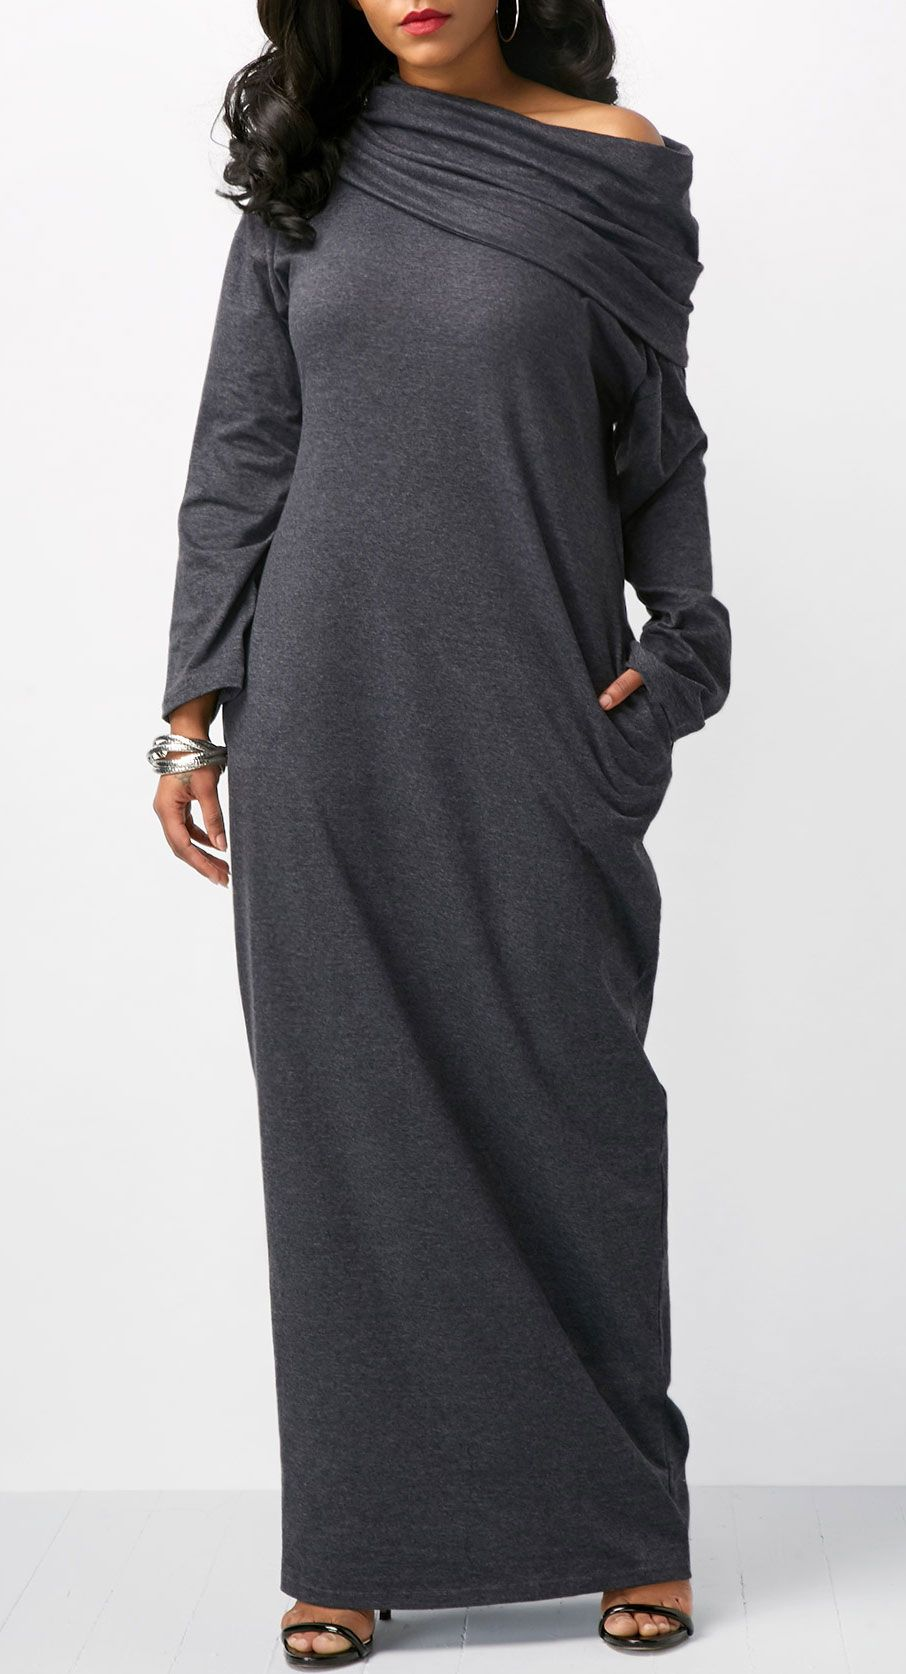 Pocket long sleeve skew neck maxi dress fall fashion